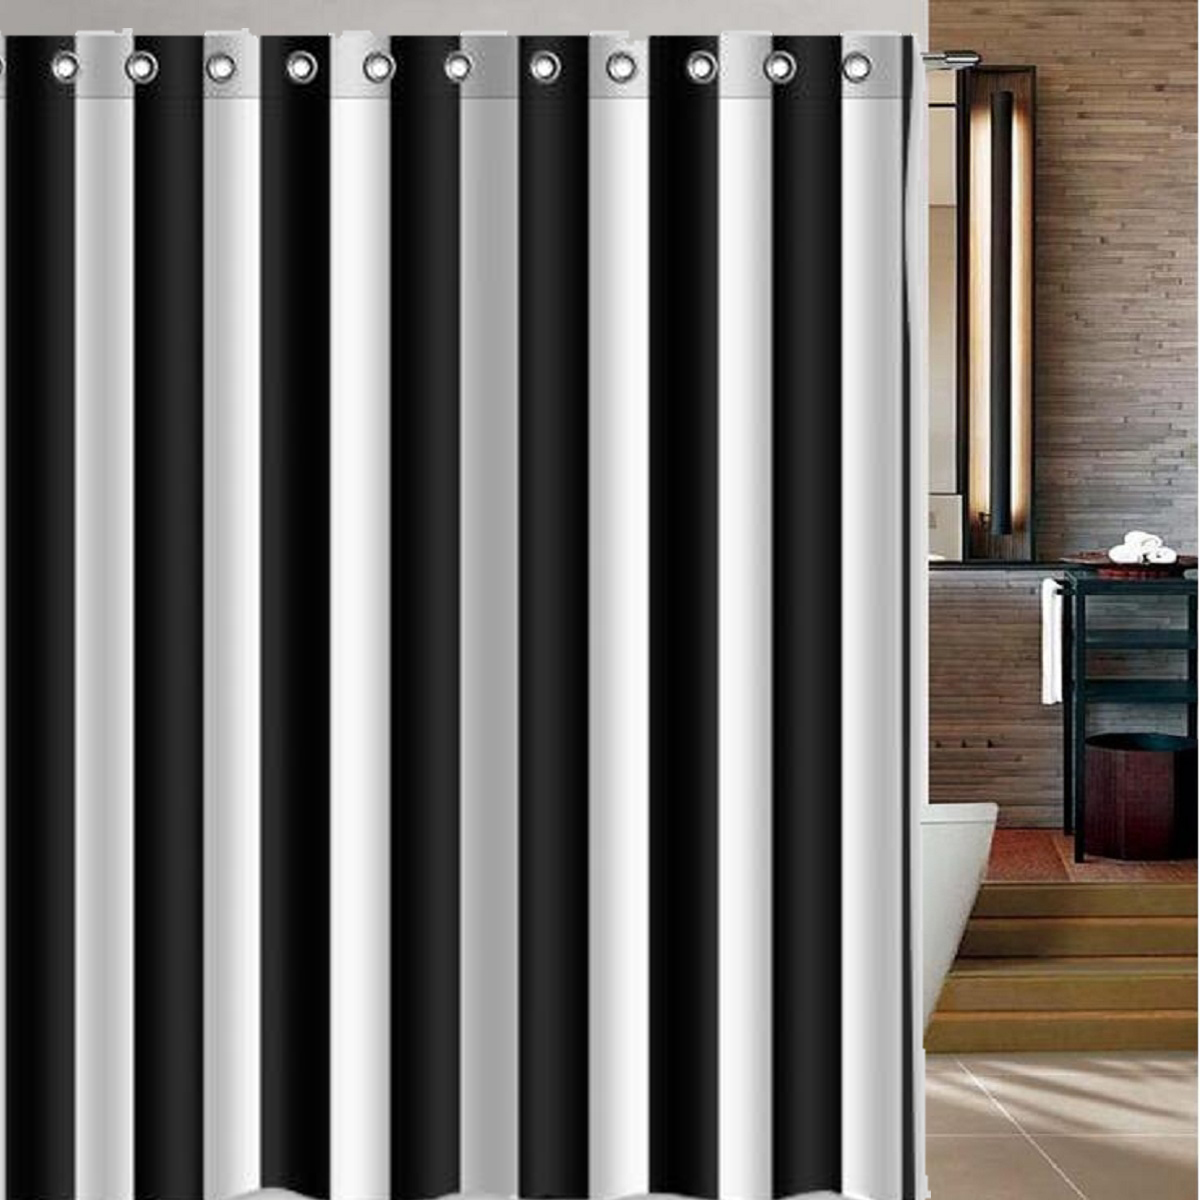 Us 11 3 43 Off Modern Waterproof Shower Curtains Black White Striped Printed Simple Style For Polyester Bathroom Home Hotel Curtain With Hooks In